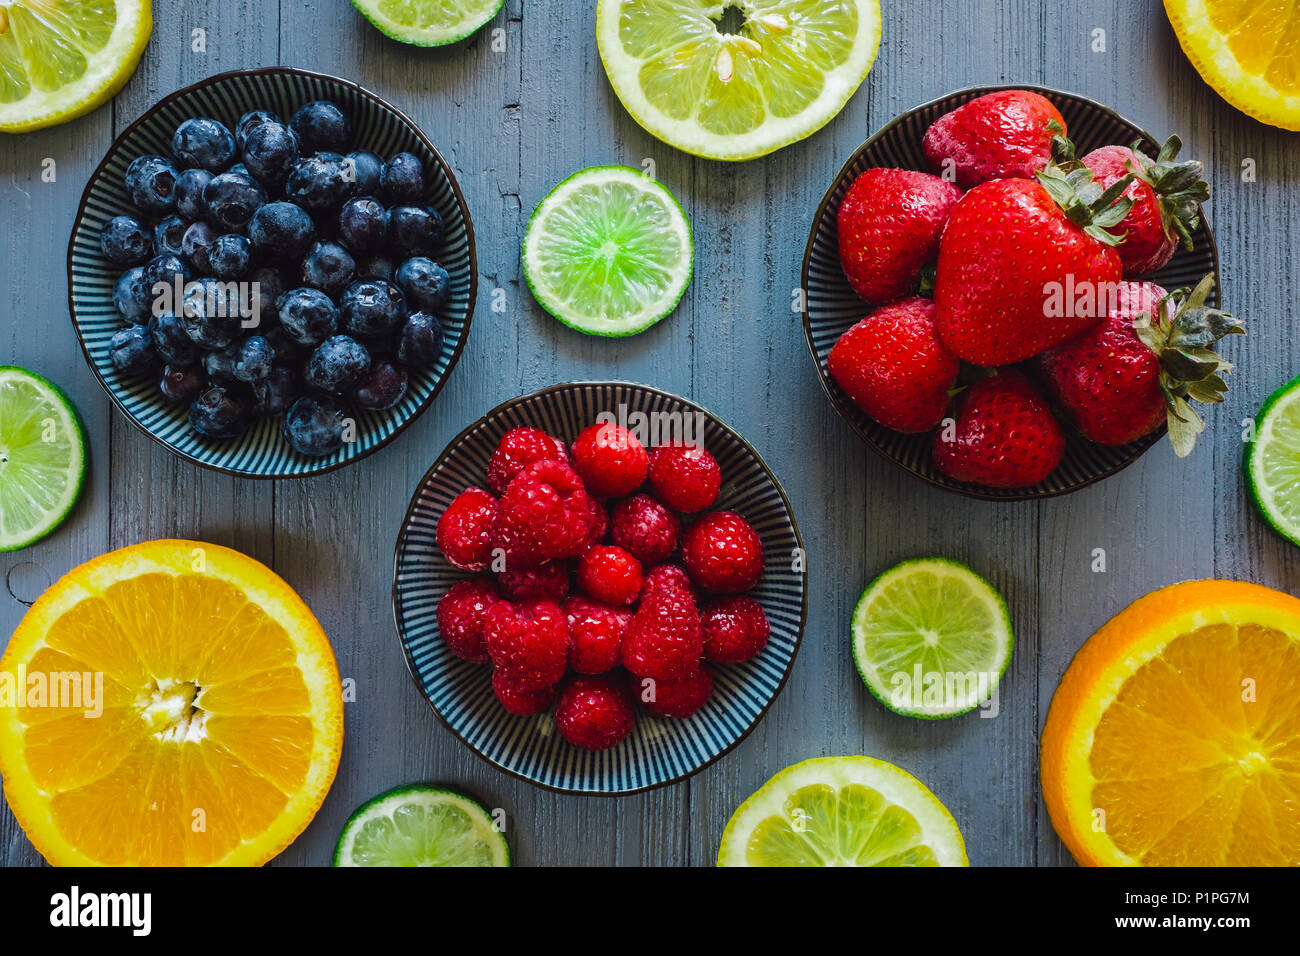 Strawberries, Raspberries and Blueberries with Oranges, Limes and Lemons on Blue Table - Stock Image